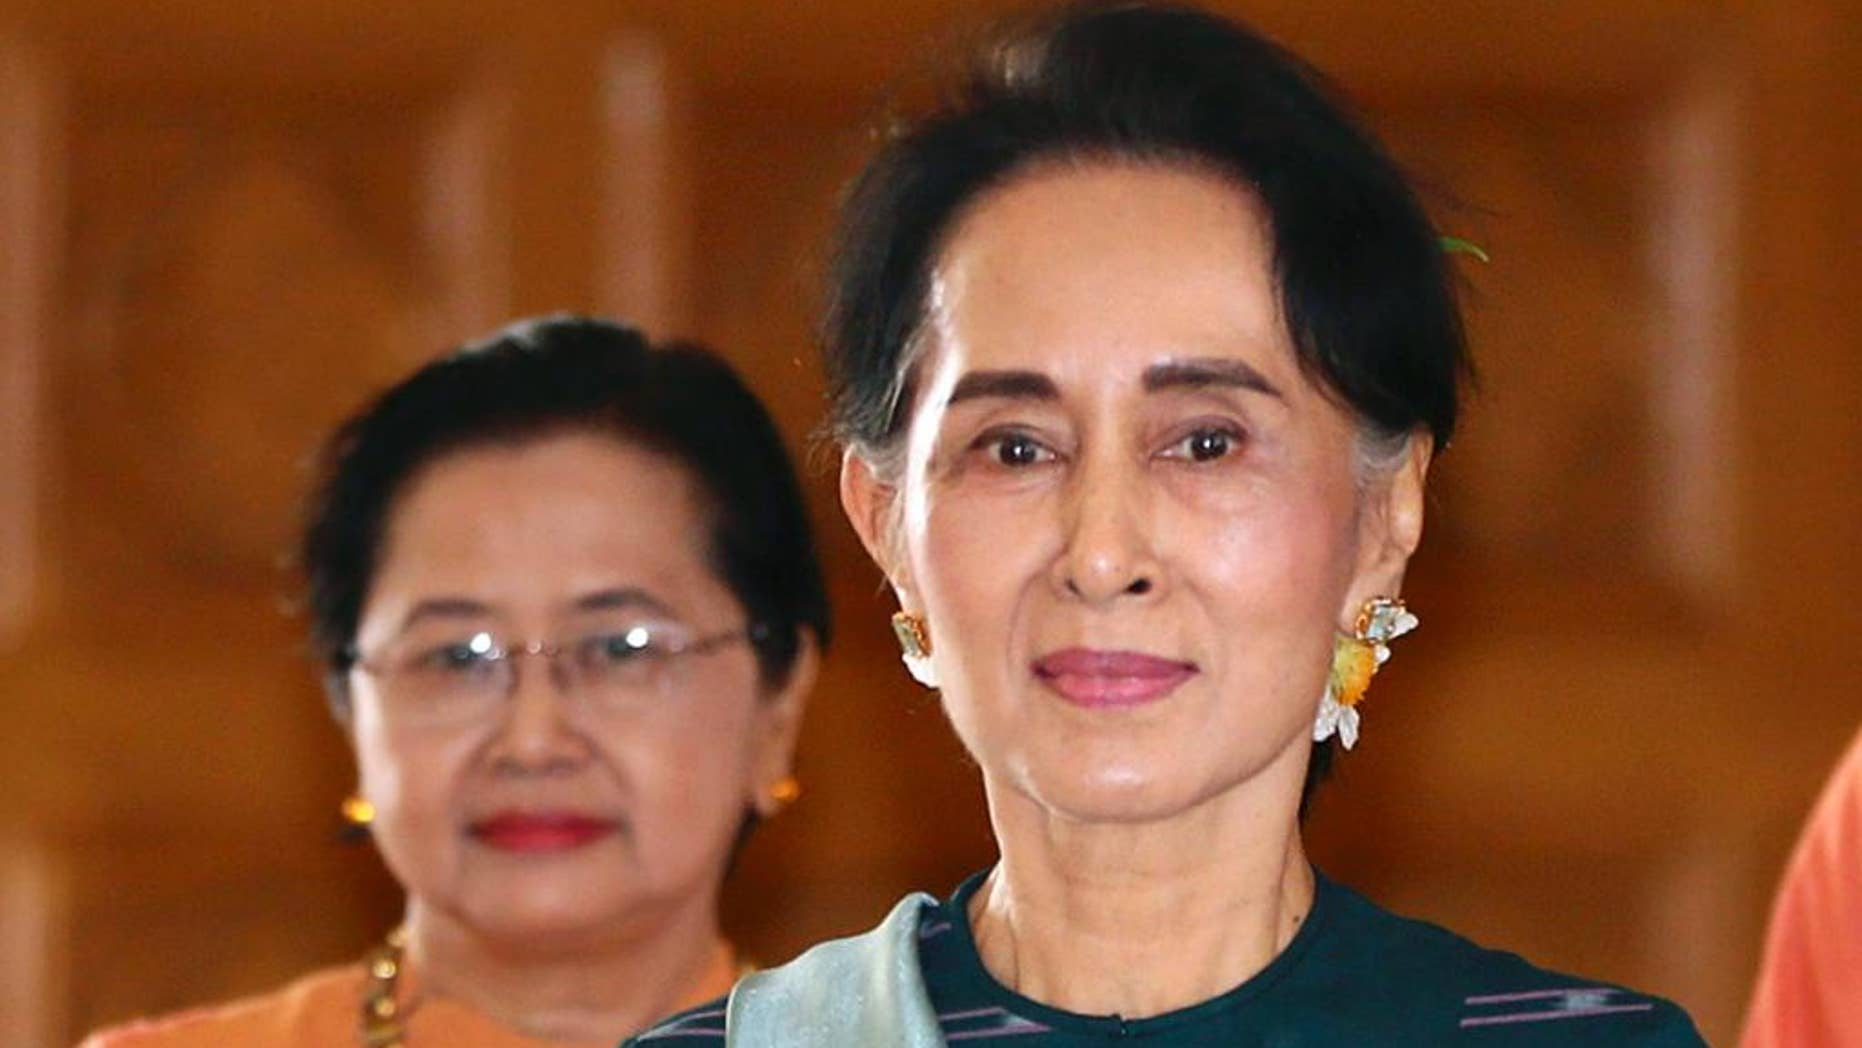 FILE - In this March 15, 2016 file photo, National League for Democracy party (NLD) leader Aung San Suu Kyi arrives at Myanmar's parliament in Naypyitaw, Myanmar. Amnesty International urged Aung San Suu Kyi and her party's new government to release all political prisoners when they take office next week, saying Thursday that Myanmar's historic transition is an opportunity to break away from the repression of the former junta rule. (AP Photo/Gemunu Amarasinghe, File)